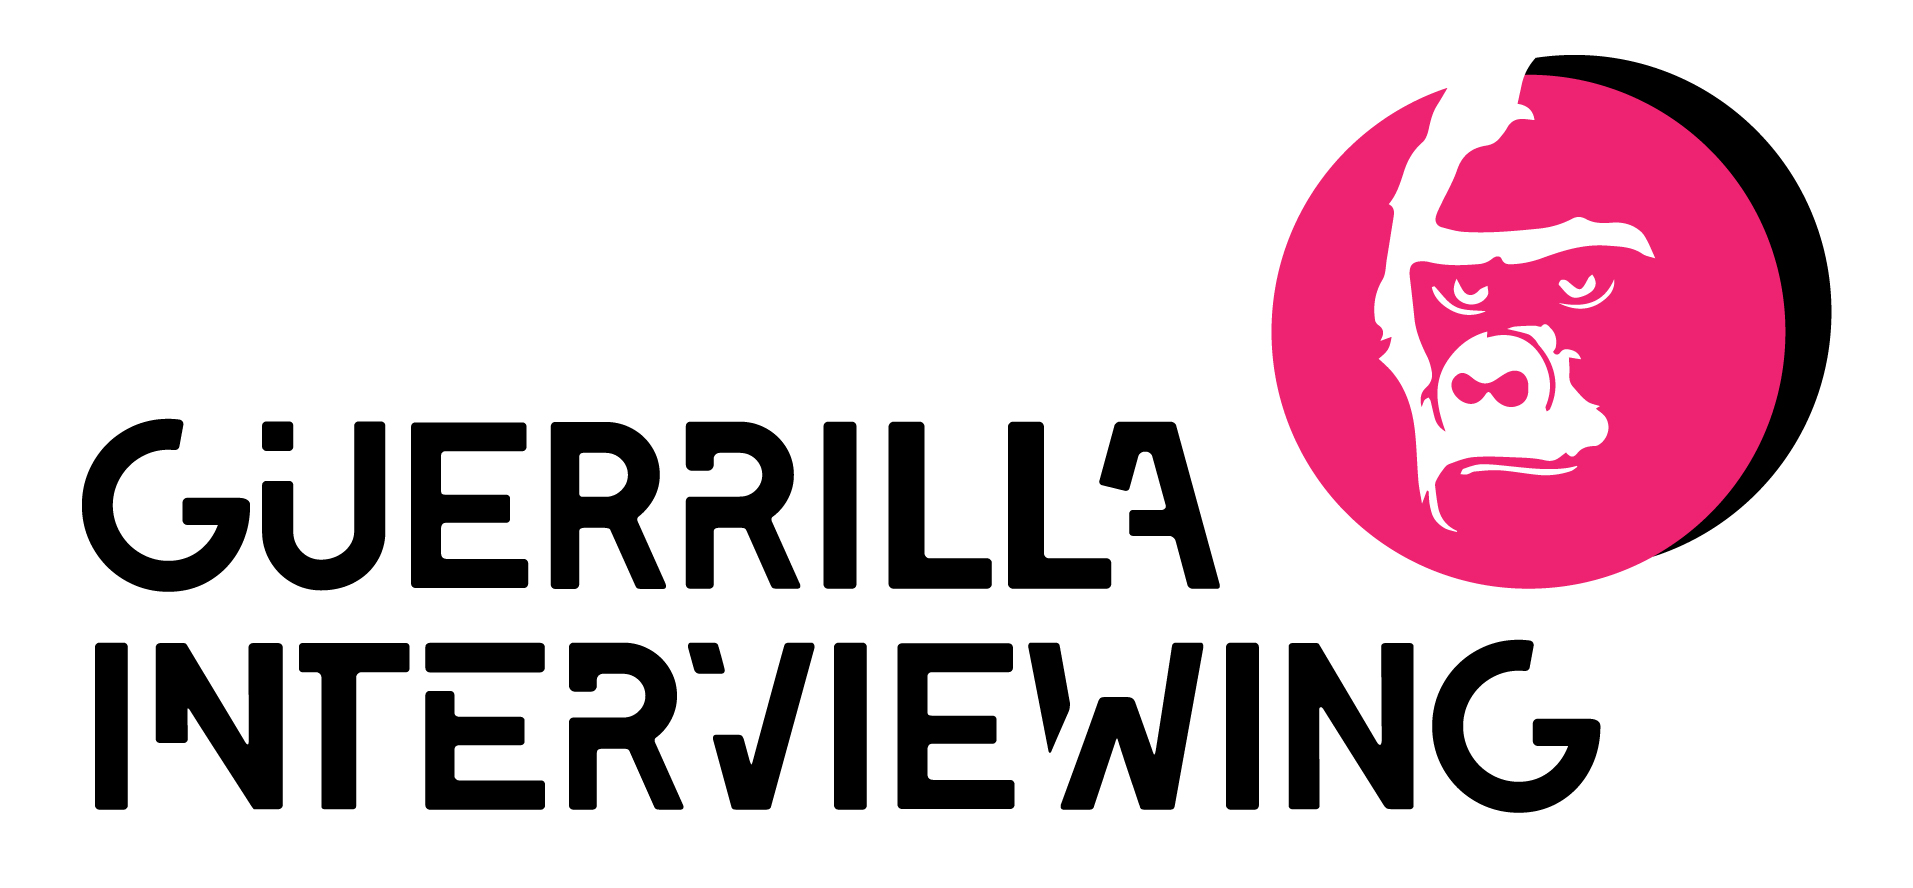 Guerrilla Interviewing: The Proven Step By Step Hiring Interview System That Gets You The Best Employees Ever!